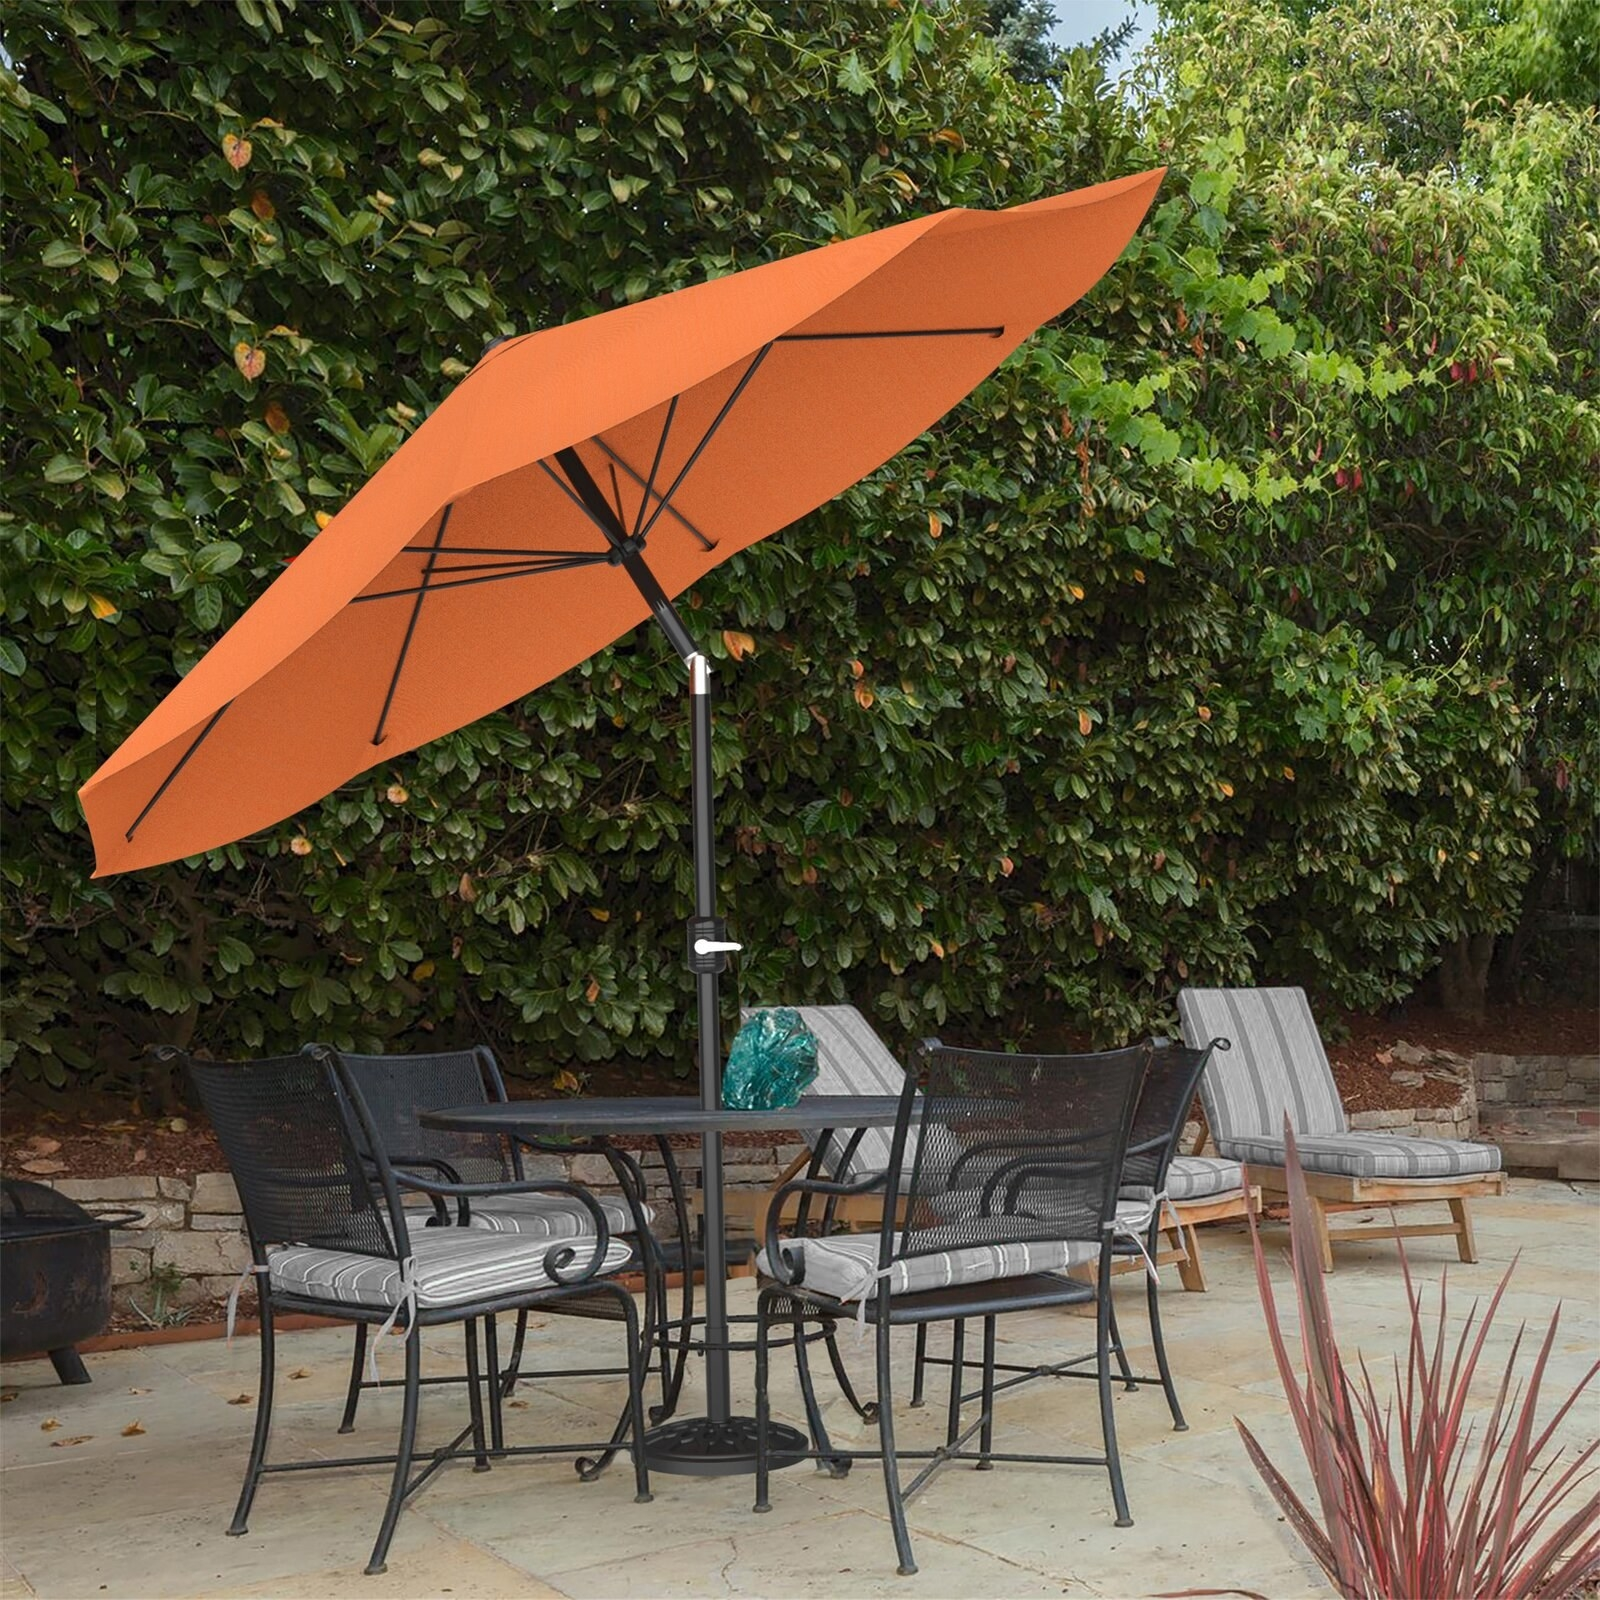 The adjustable umbrella attached to an outdoor dining table